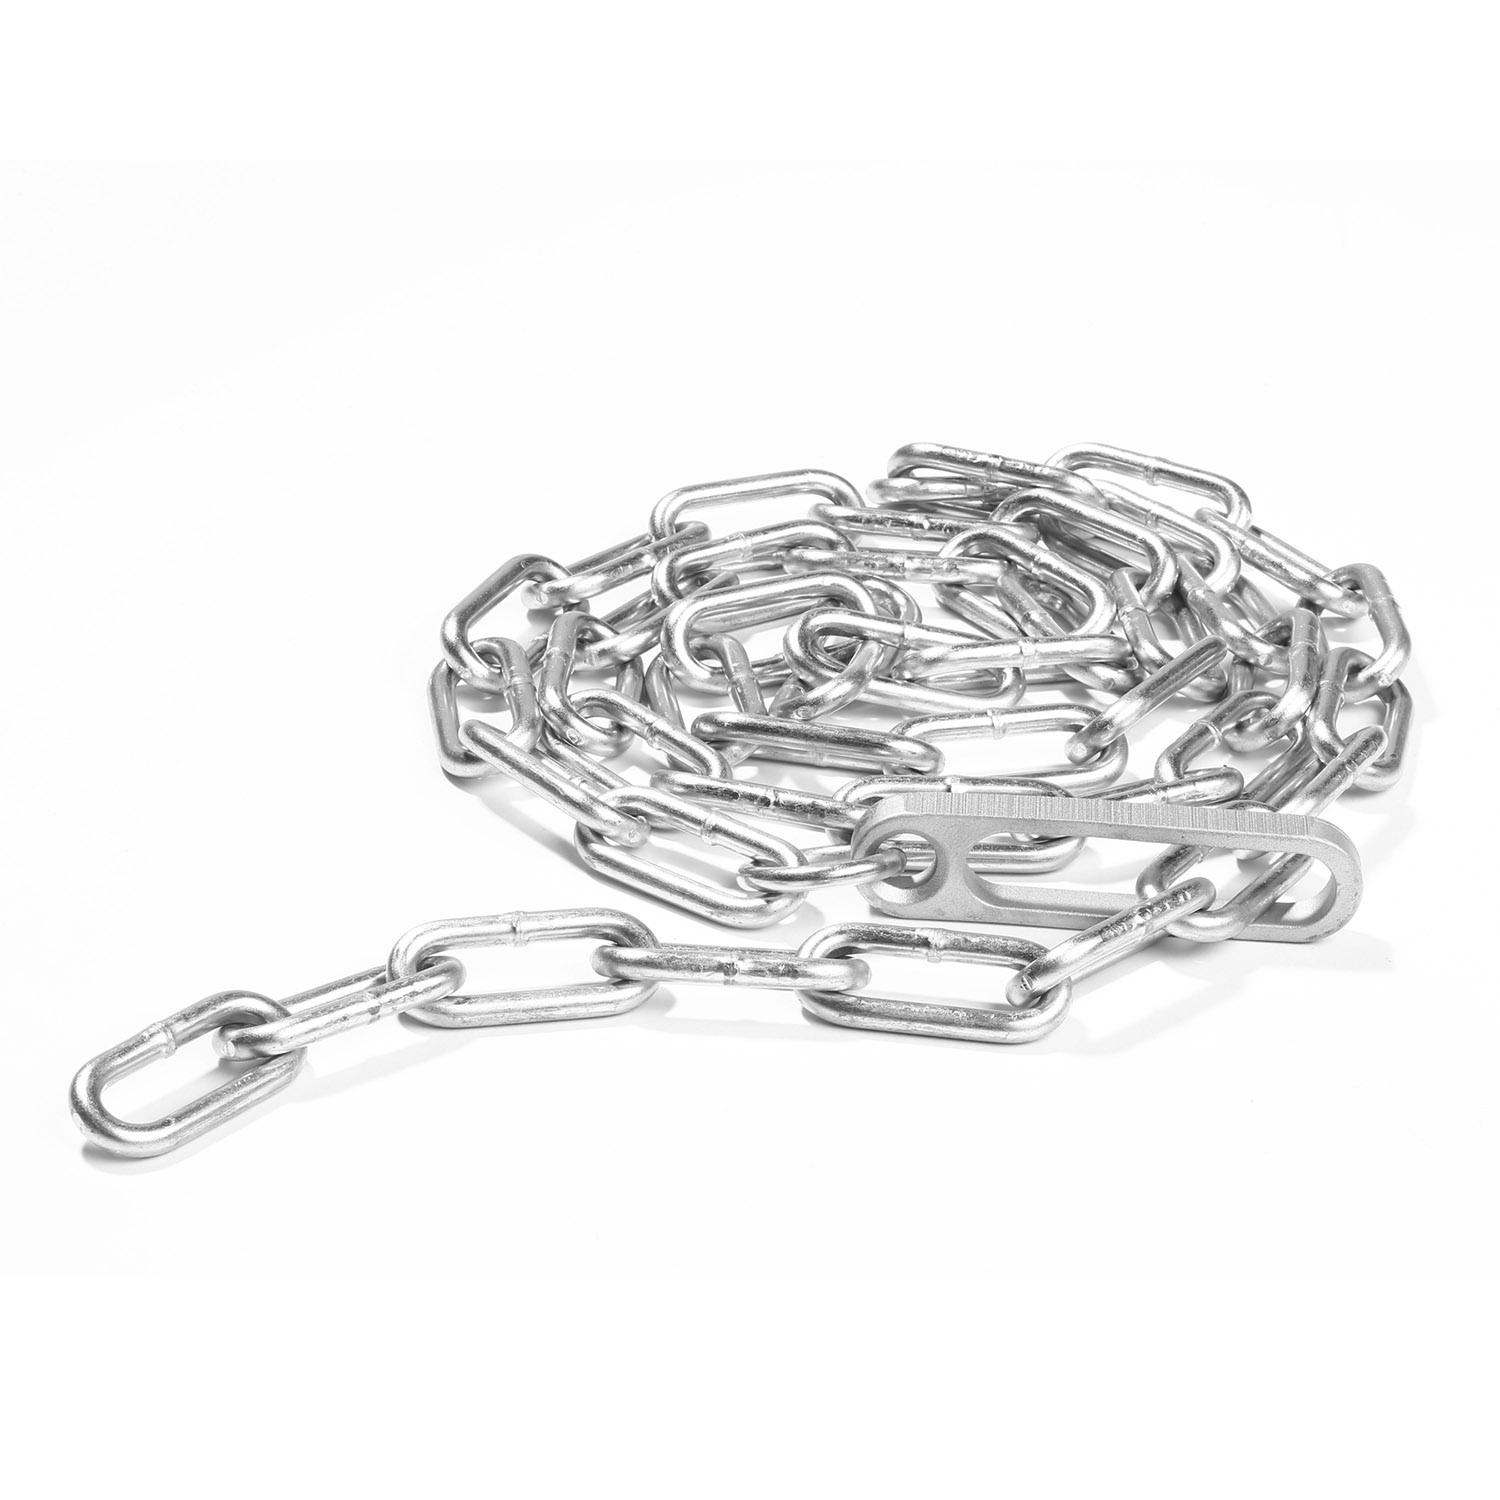 Smith & Wesson Model 1840 Restraint Chain